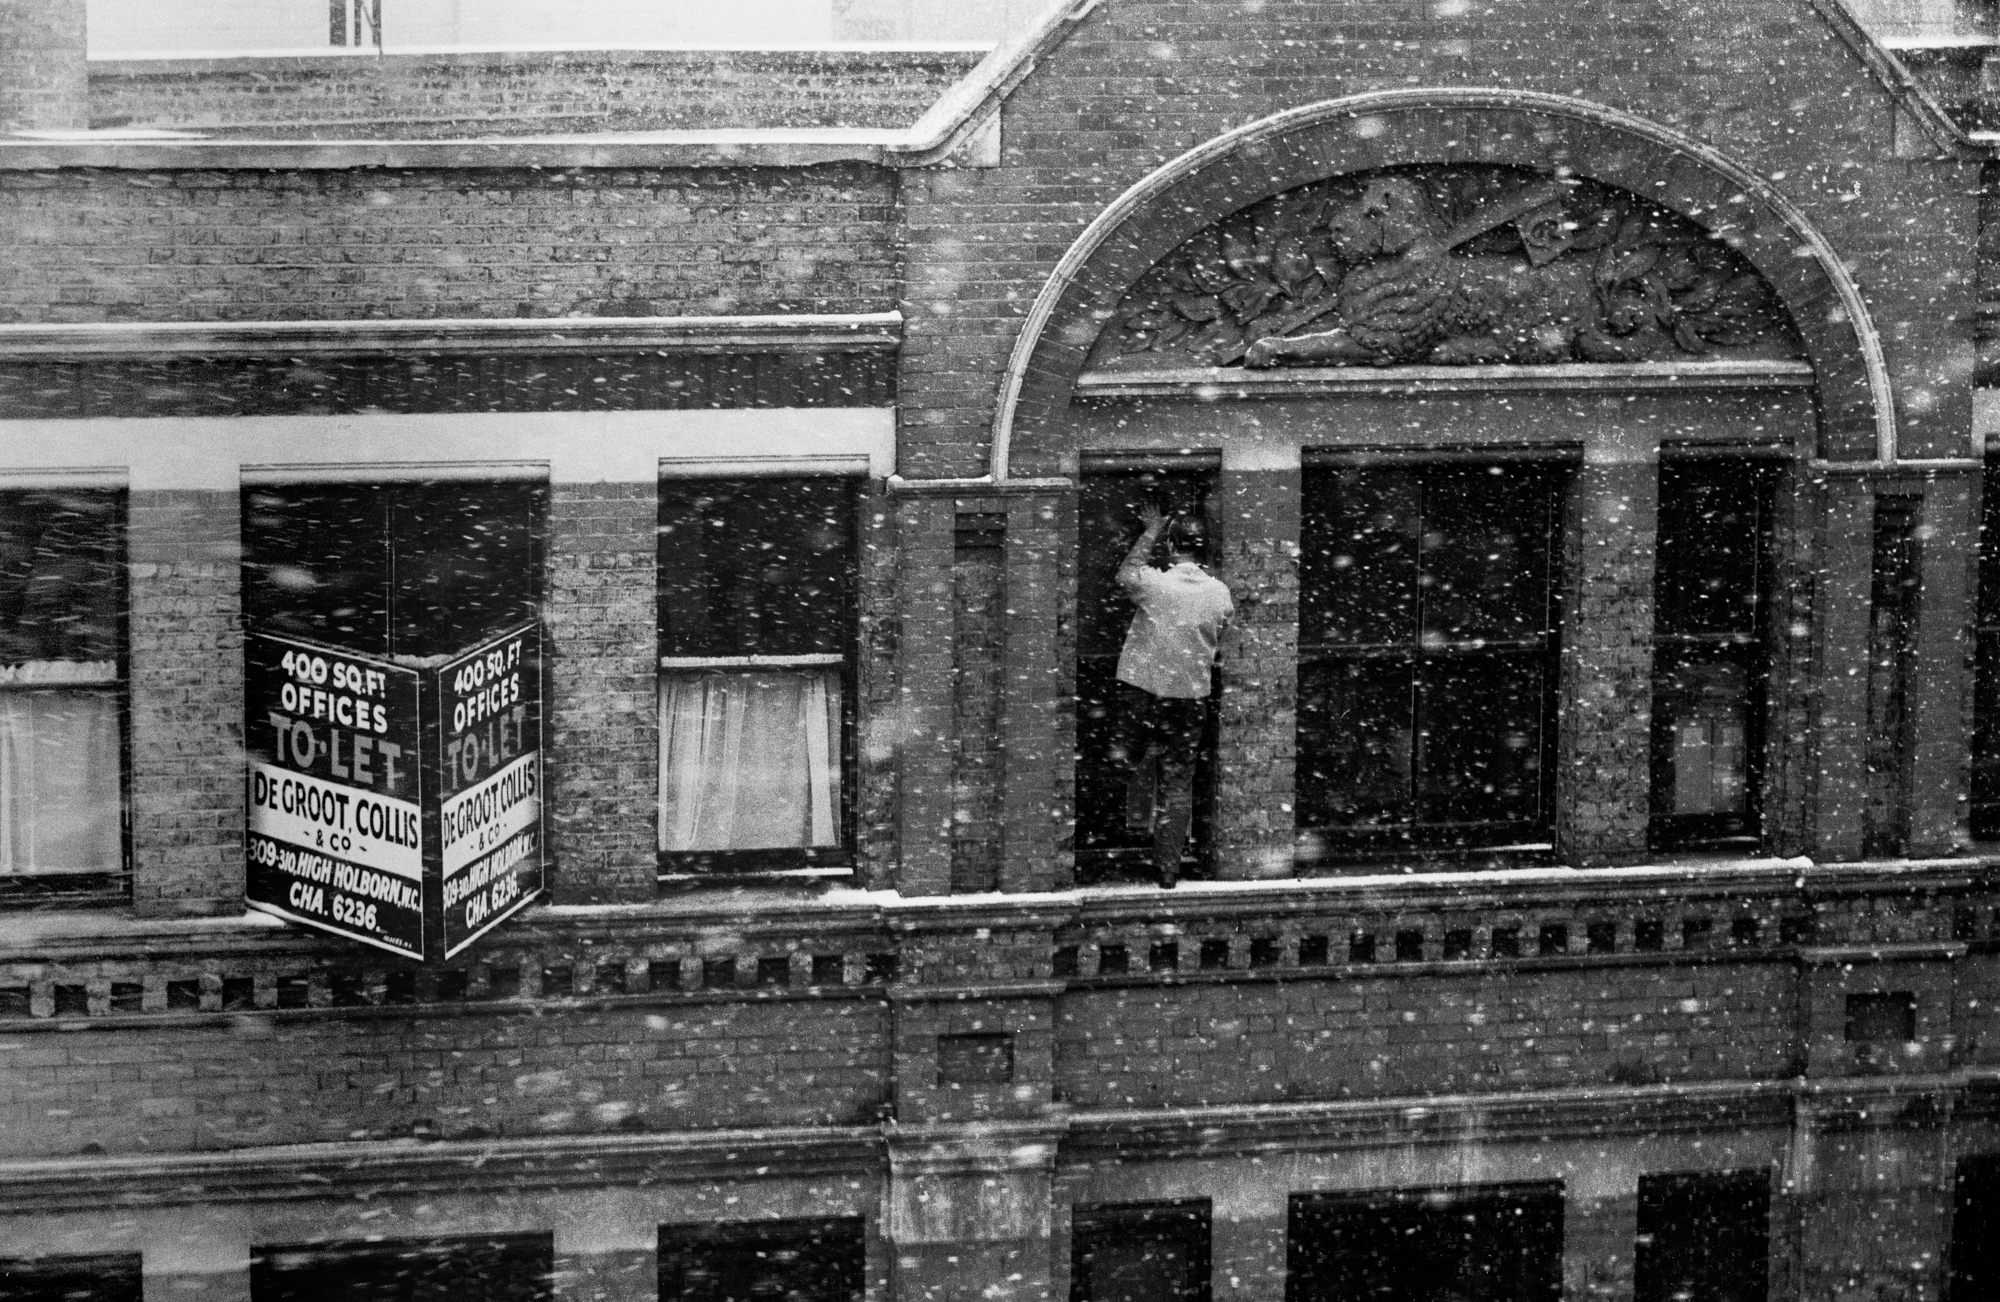 EARLY YEARS - Window Cleaner in the Snow - Clerkenwell - 1953